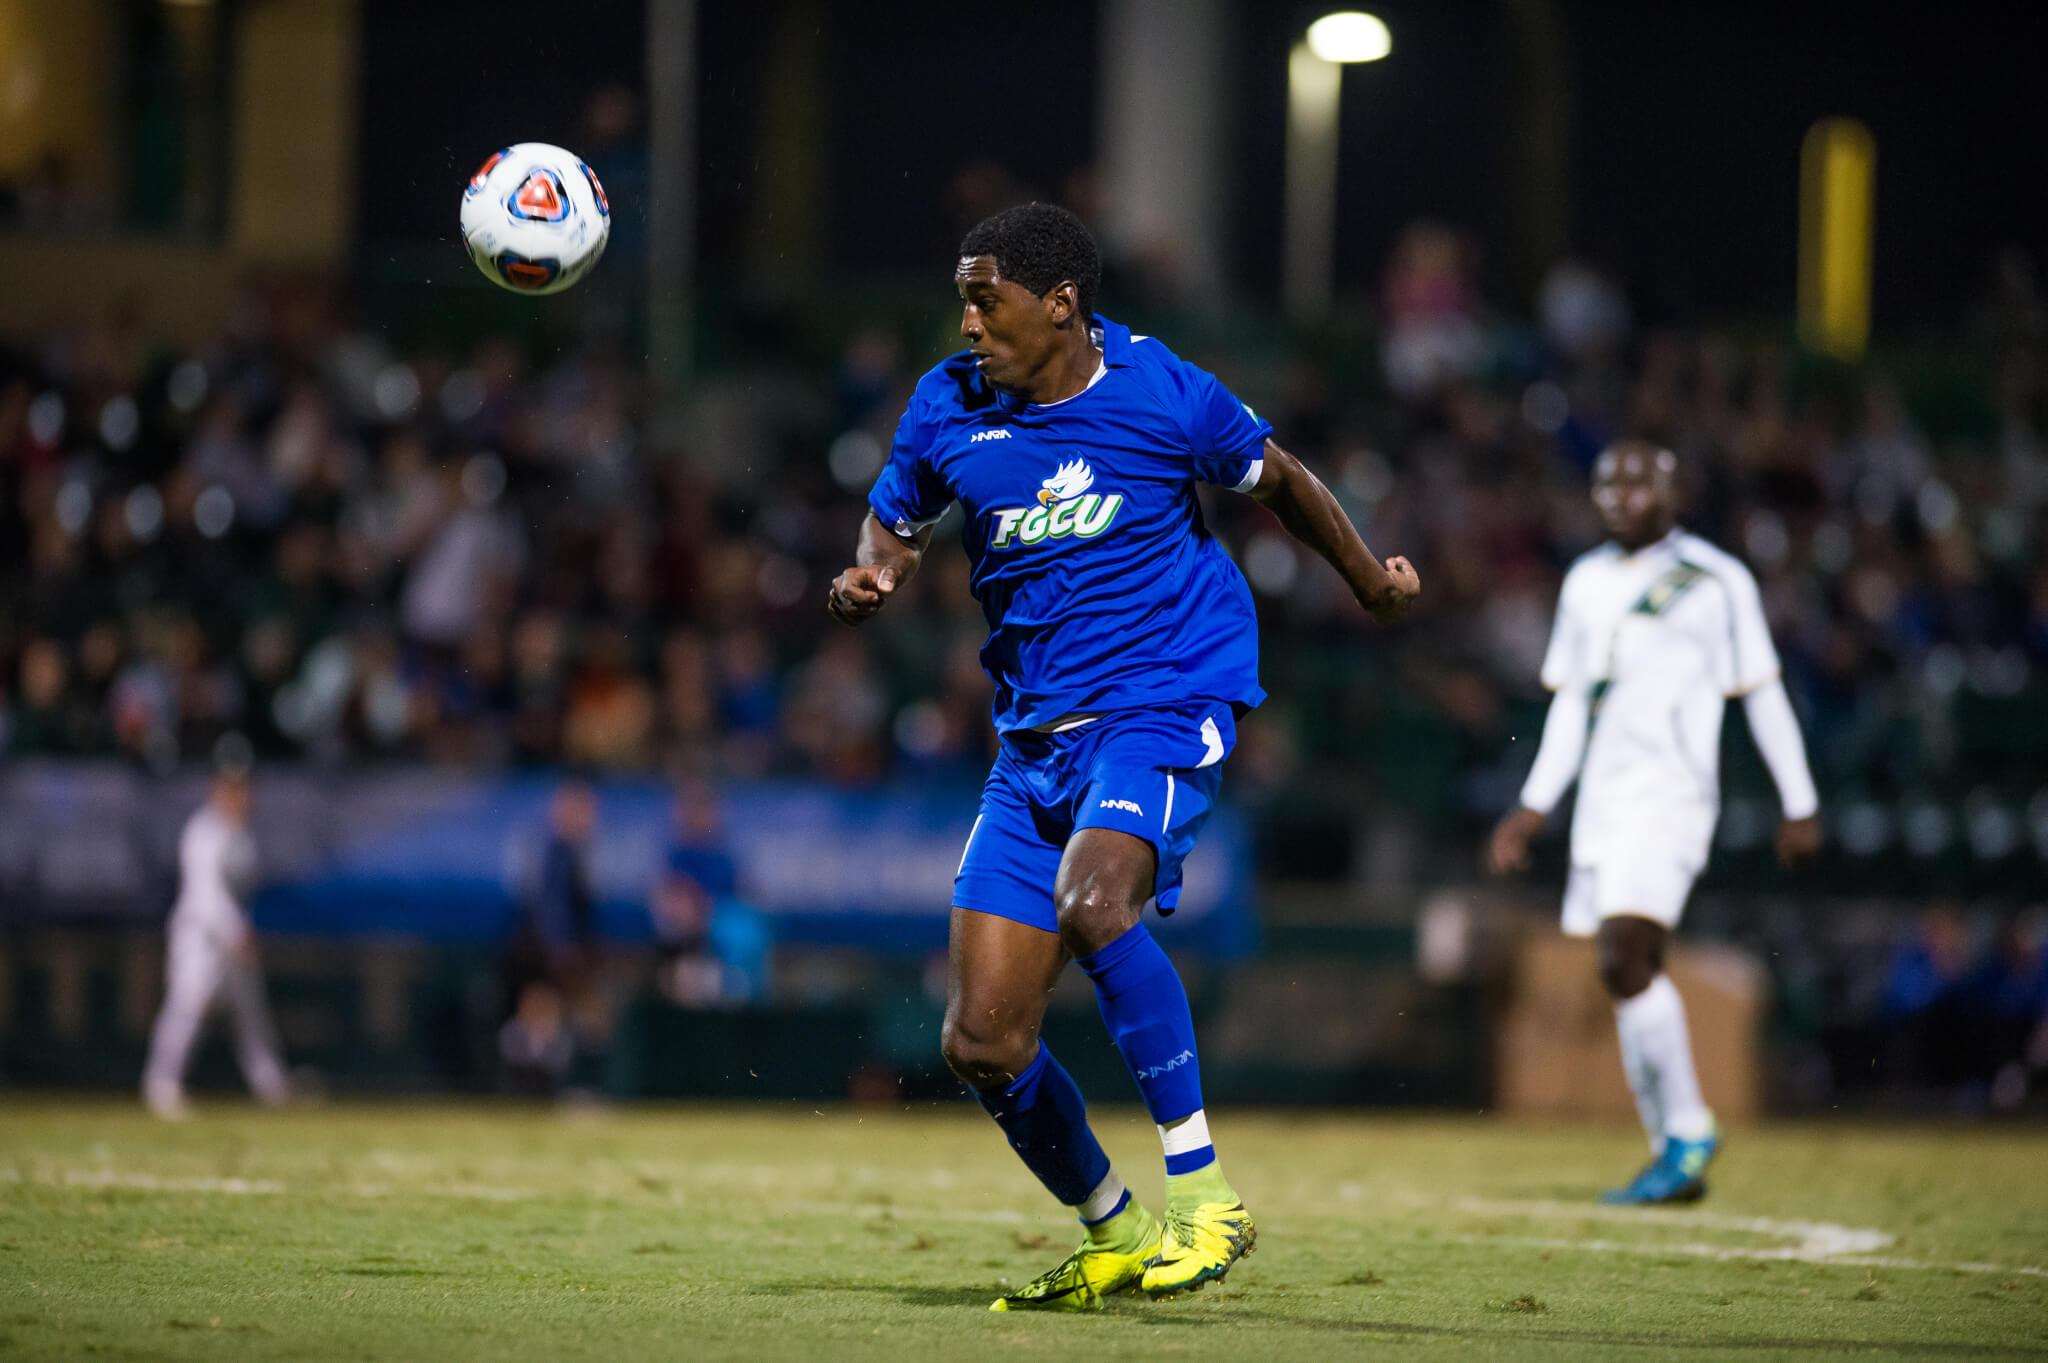 FGCU men's soccer falls to UNC in double overtime